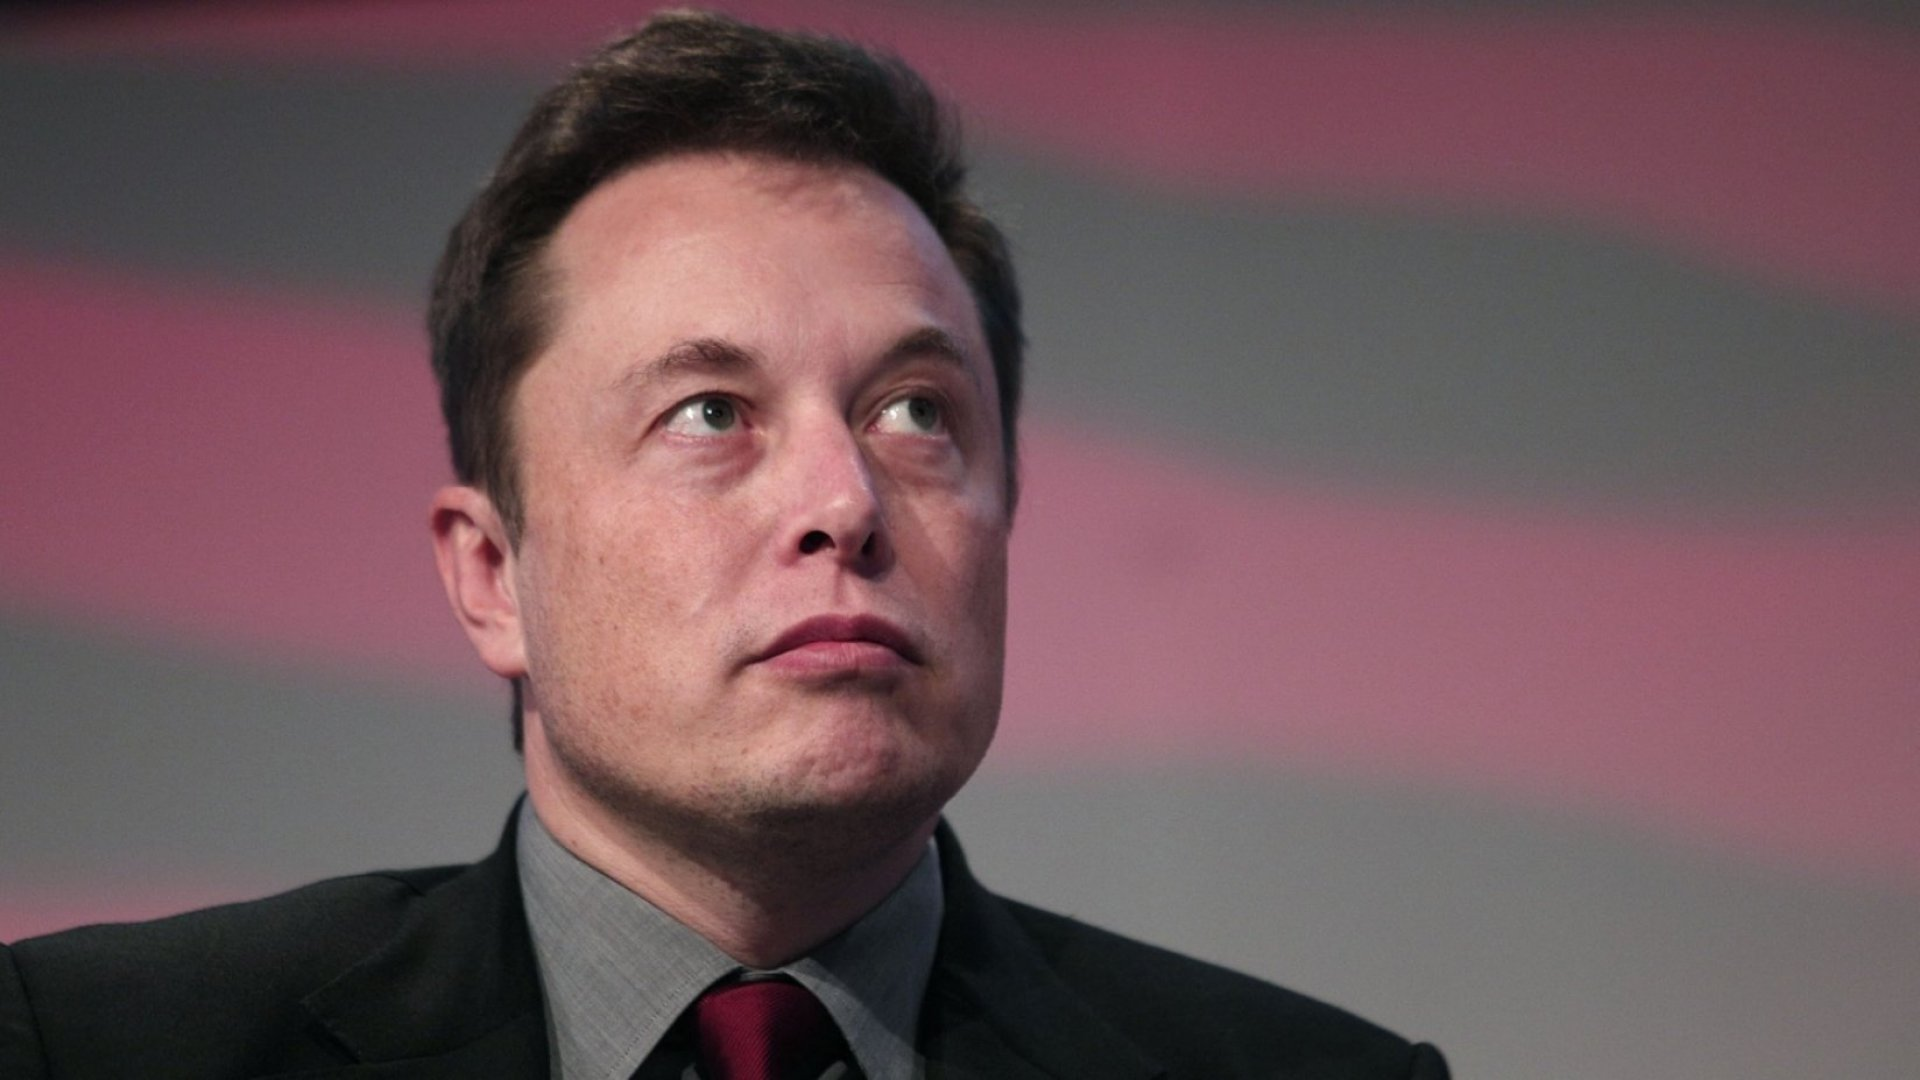 Elon Musk's New Tesla Compensation Plan Means One Thing: Jobs